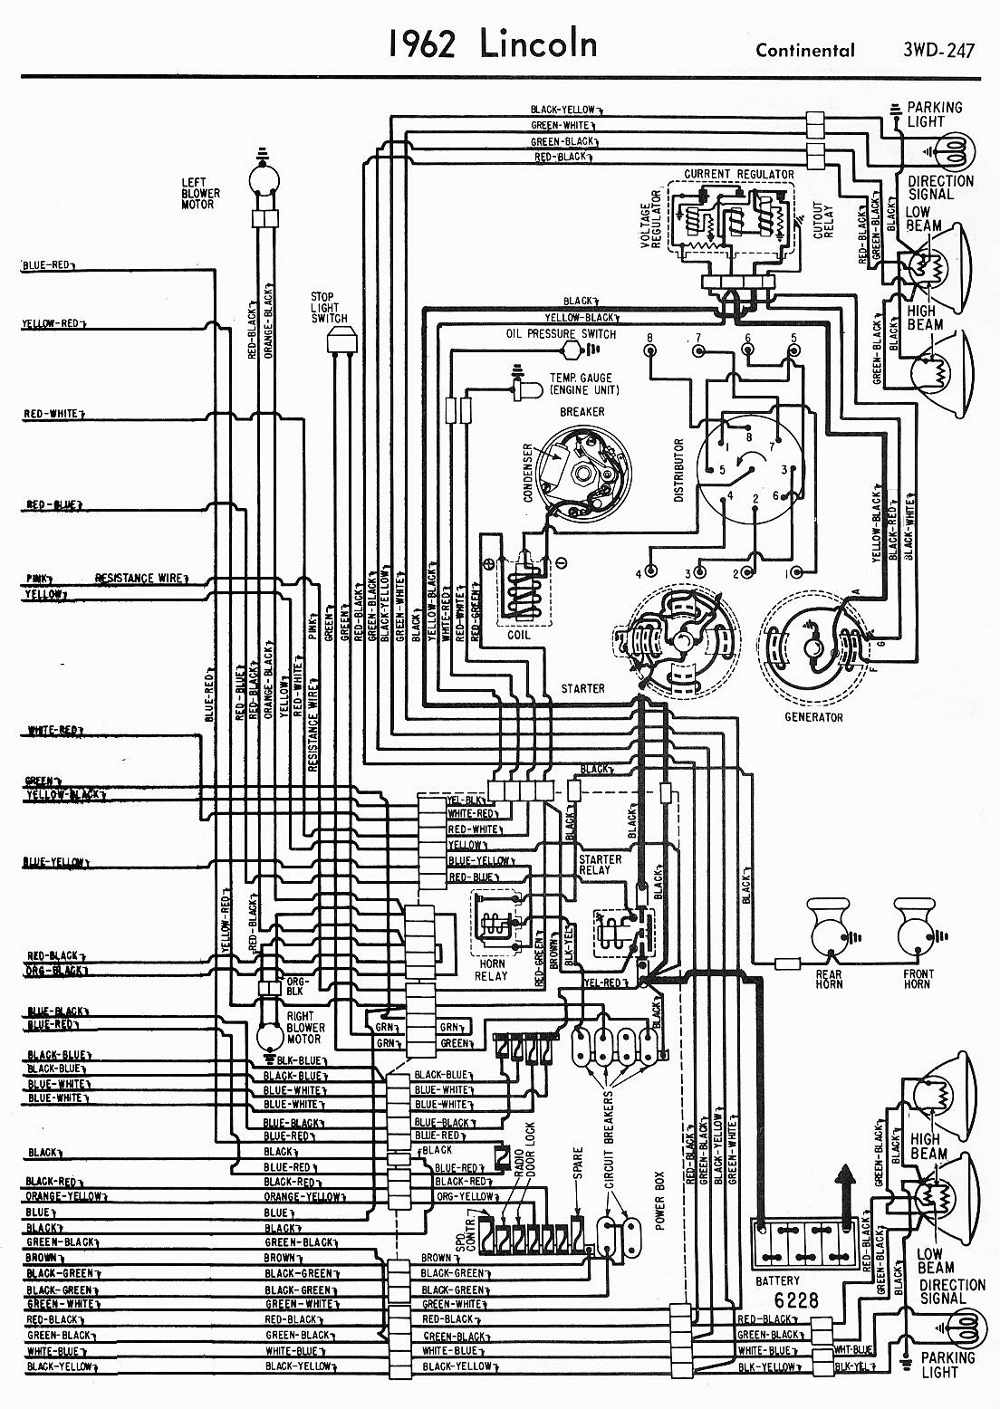 Milnor Wiring Diagrams Diagram Lincoln Impinger 1116 All Diagram62 Change Your Idea With Basic